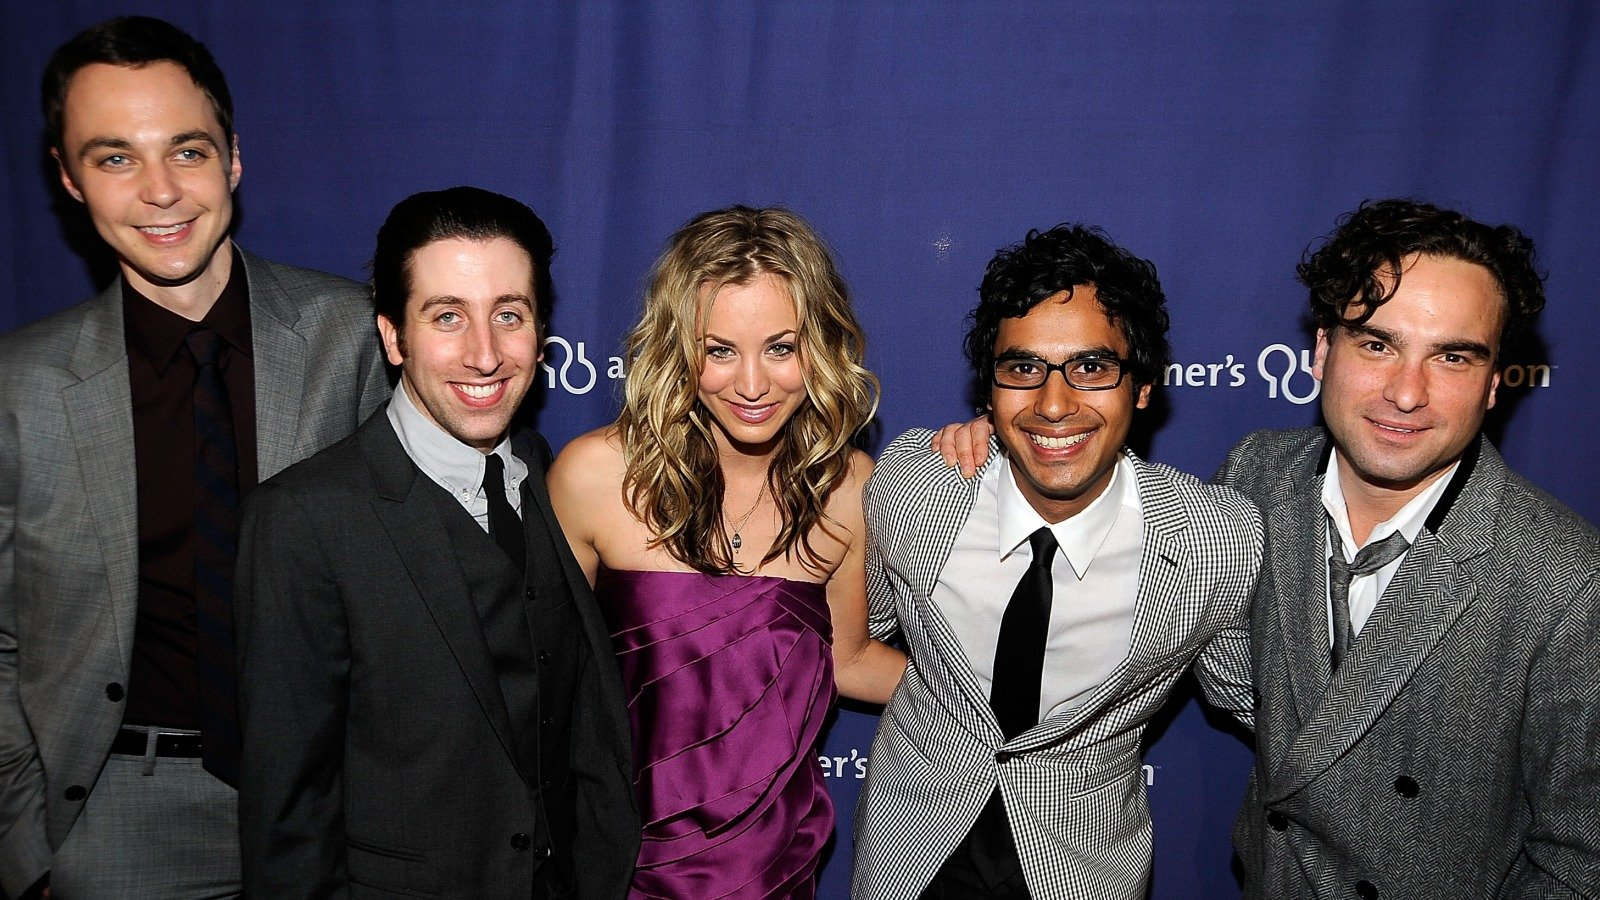 The Real Life Partners Of The Big Bang Theory Cast